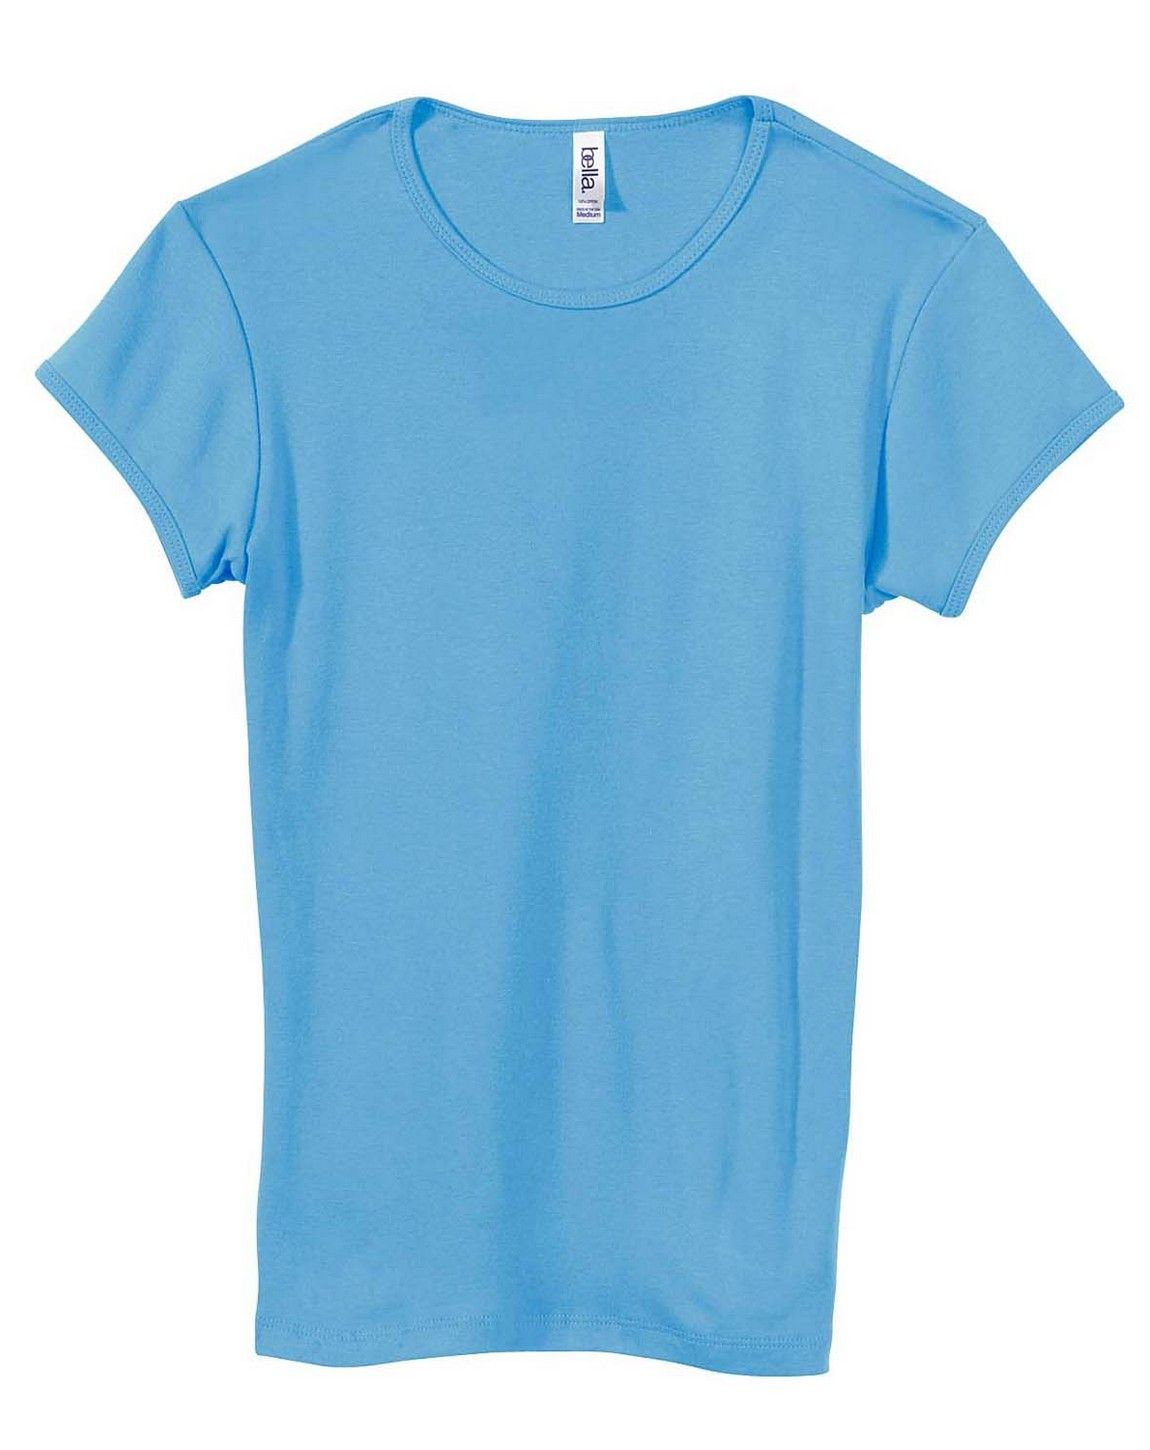 Bella + Canvas 1001 Ladies Stretch Rib Short-Sleeve T-Shirt